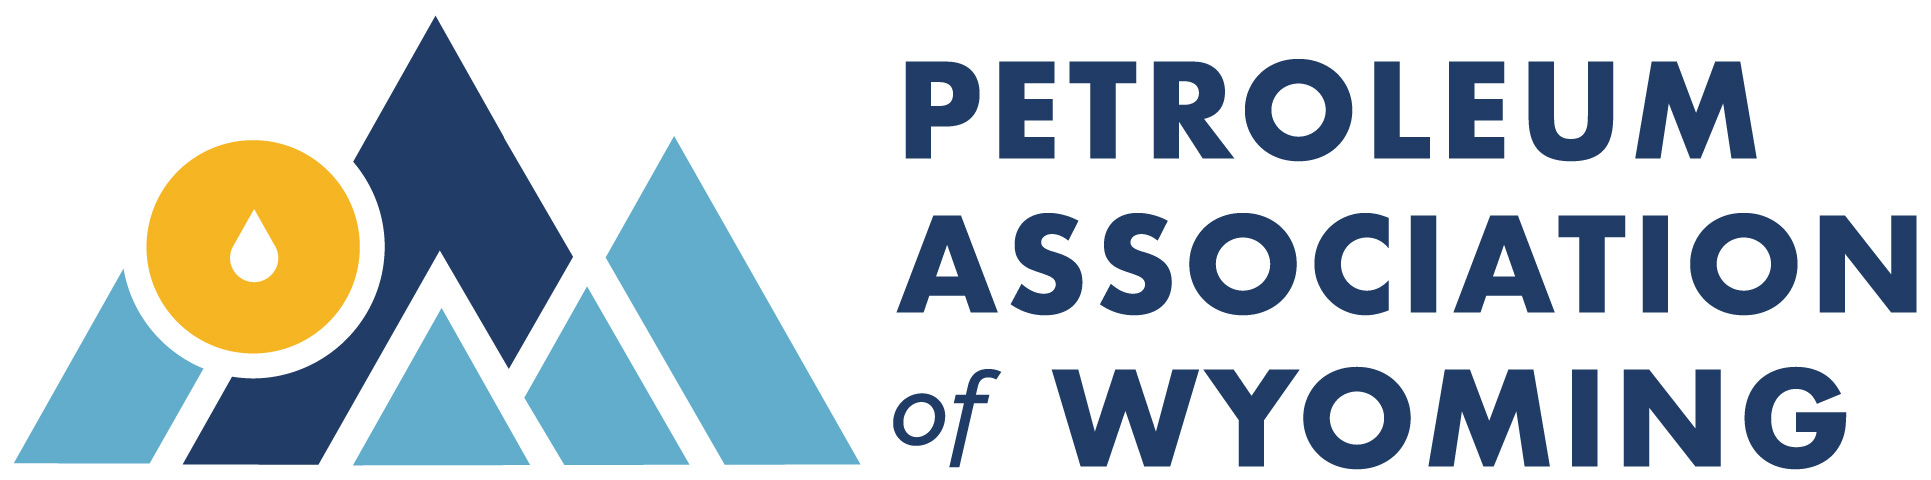 Petroleum Association of Wyoming Buyers Guide